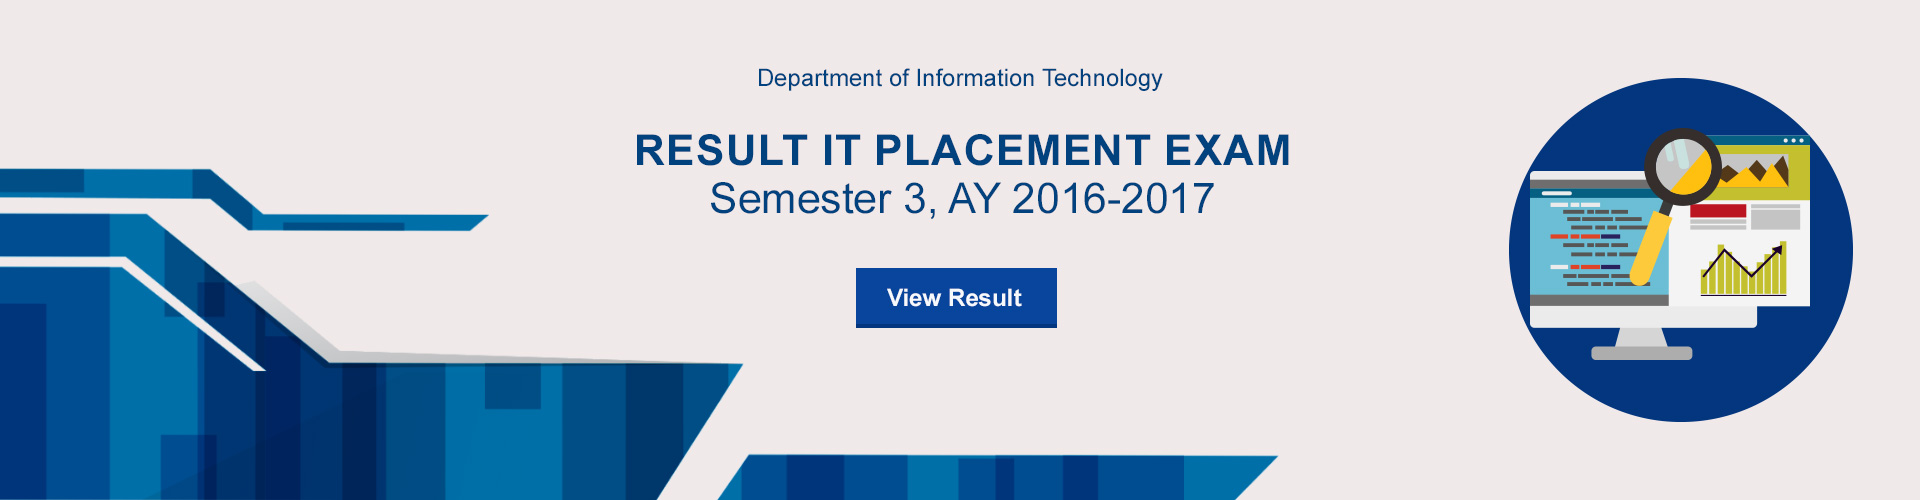 Result IT Placement Exam Semester 3, AY 2016-2017